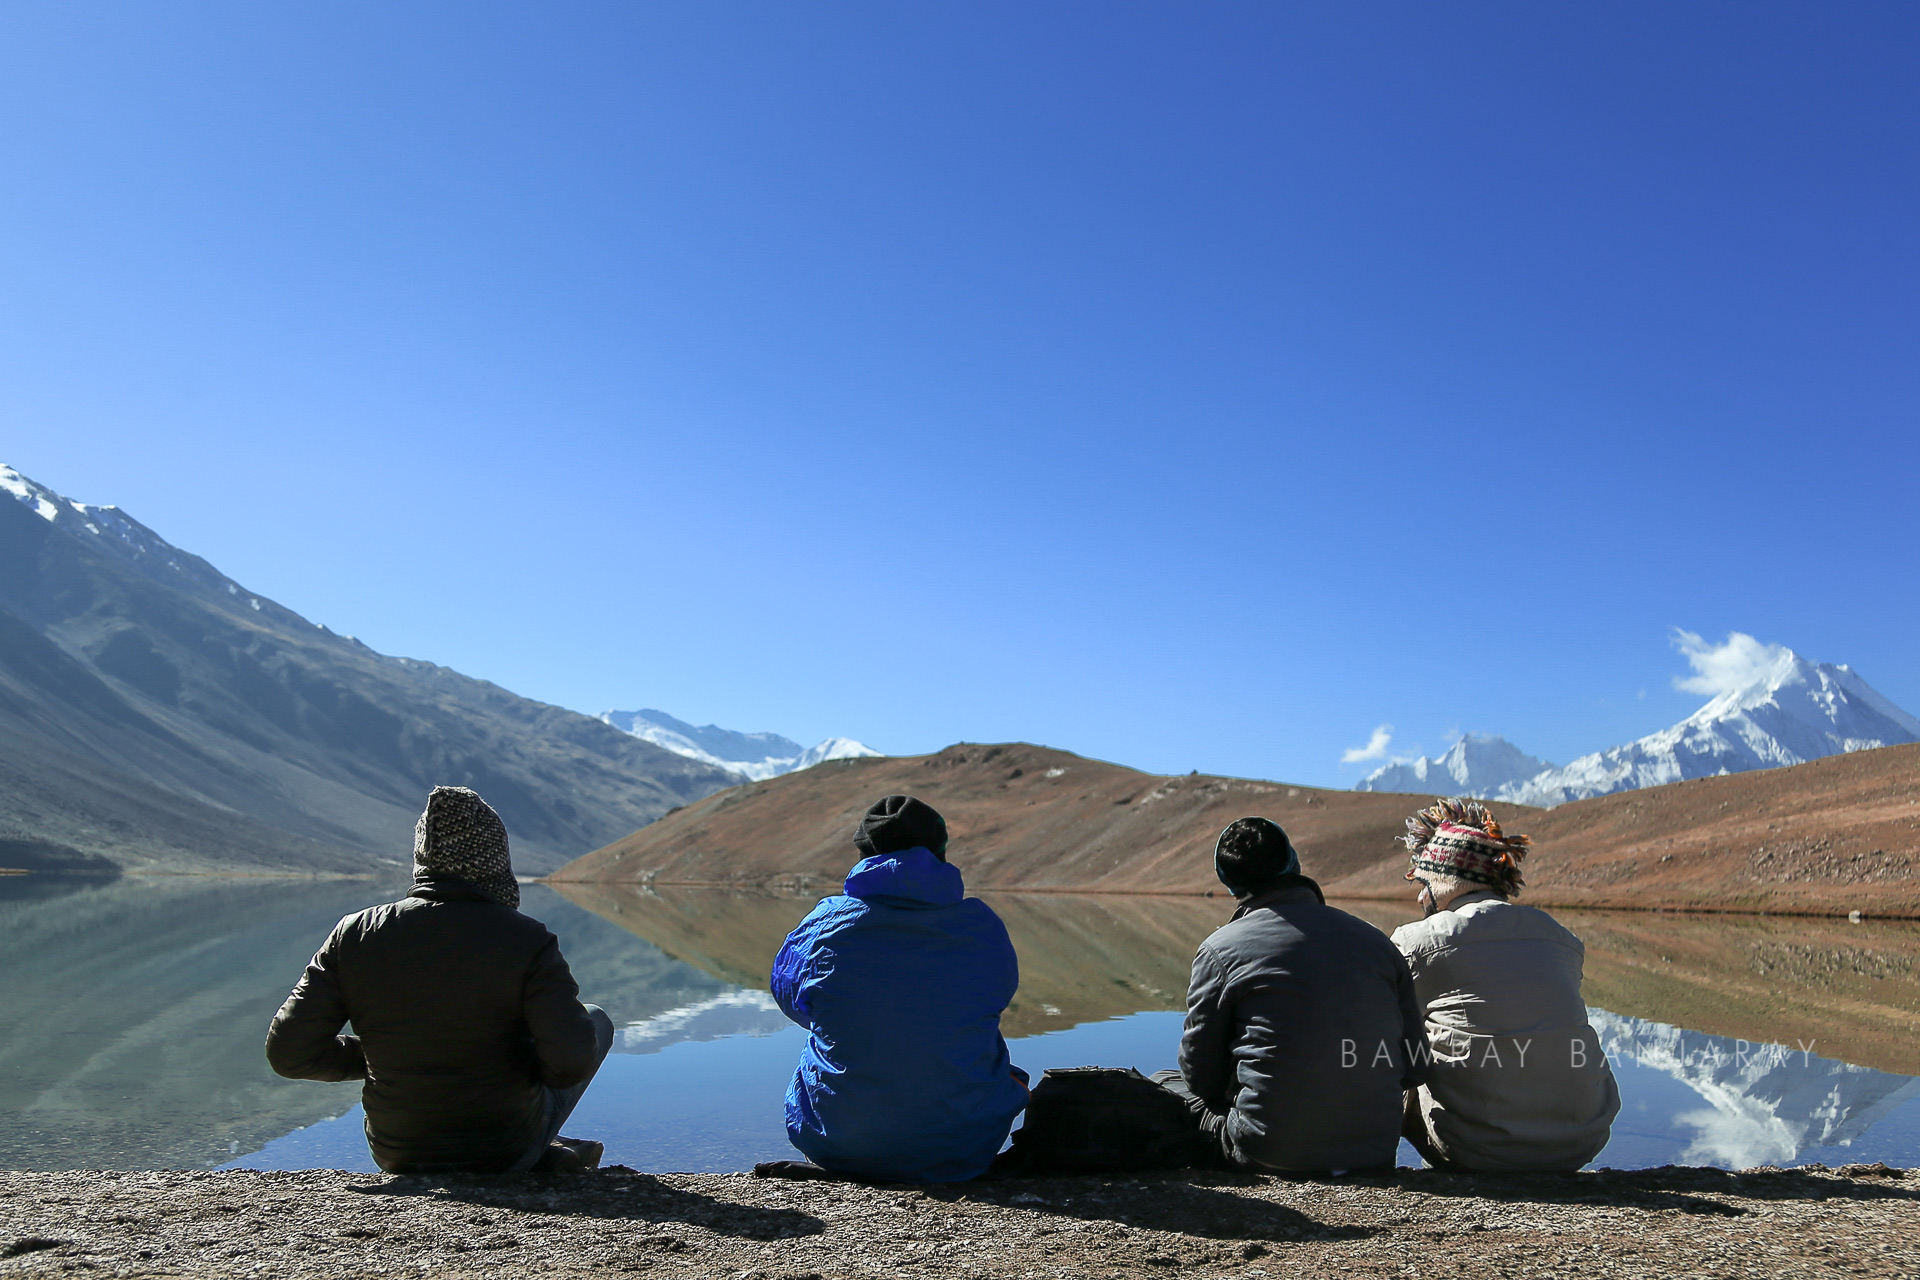 Bawray Banjaray at Chandra Taal while on their road trip to Spiti Valley